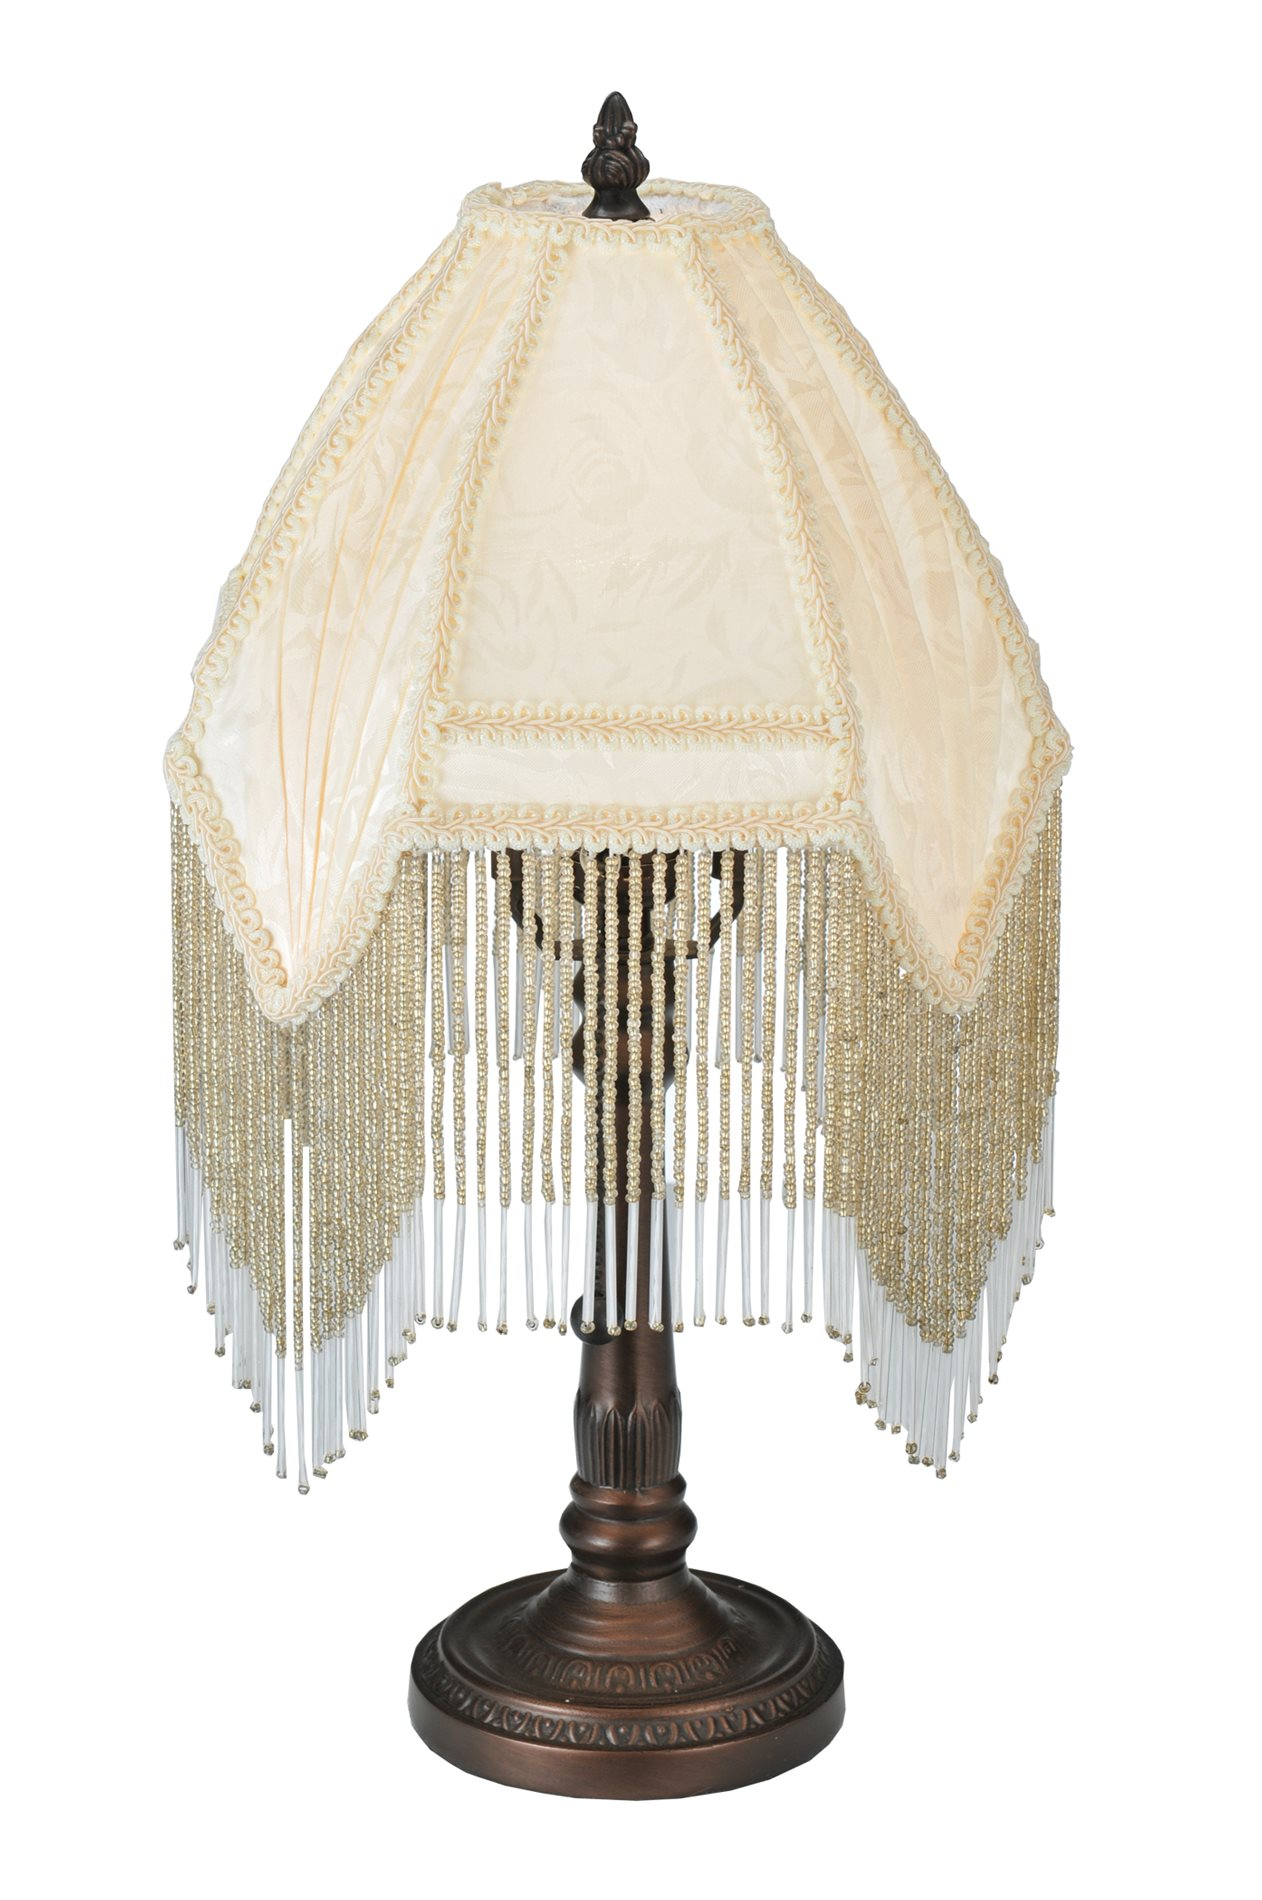 House Table Lamp Meyda Tiffany 51440 Victorian Style Arabesque Fabric Table